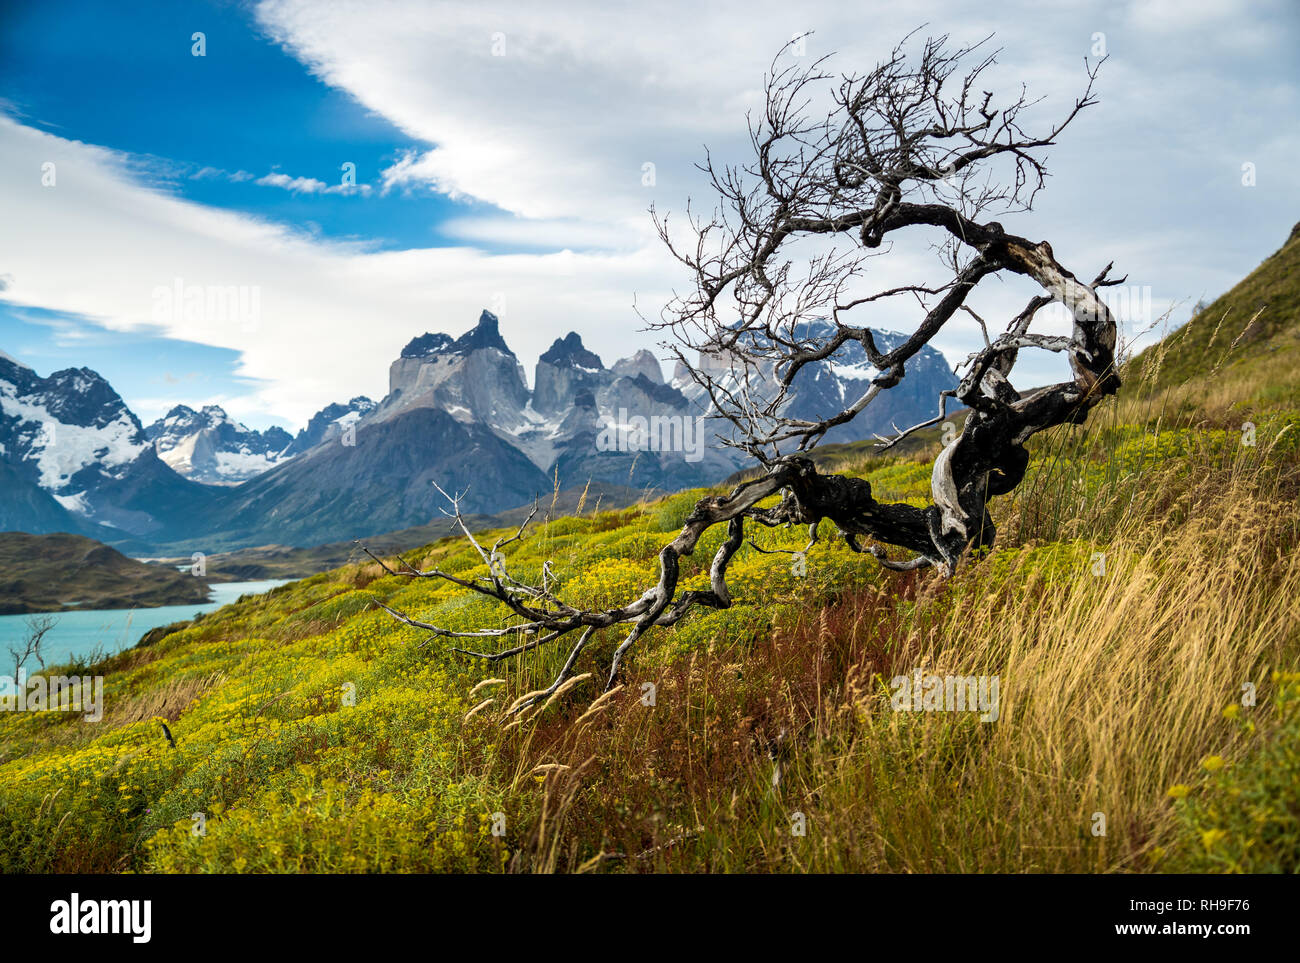 a burned tree and the worldfamous view of the Torres del Paine Massiv - Stock Image